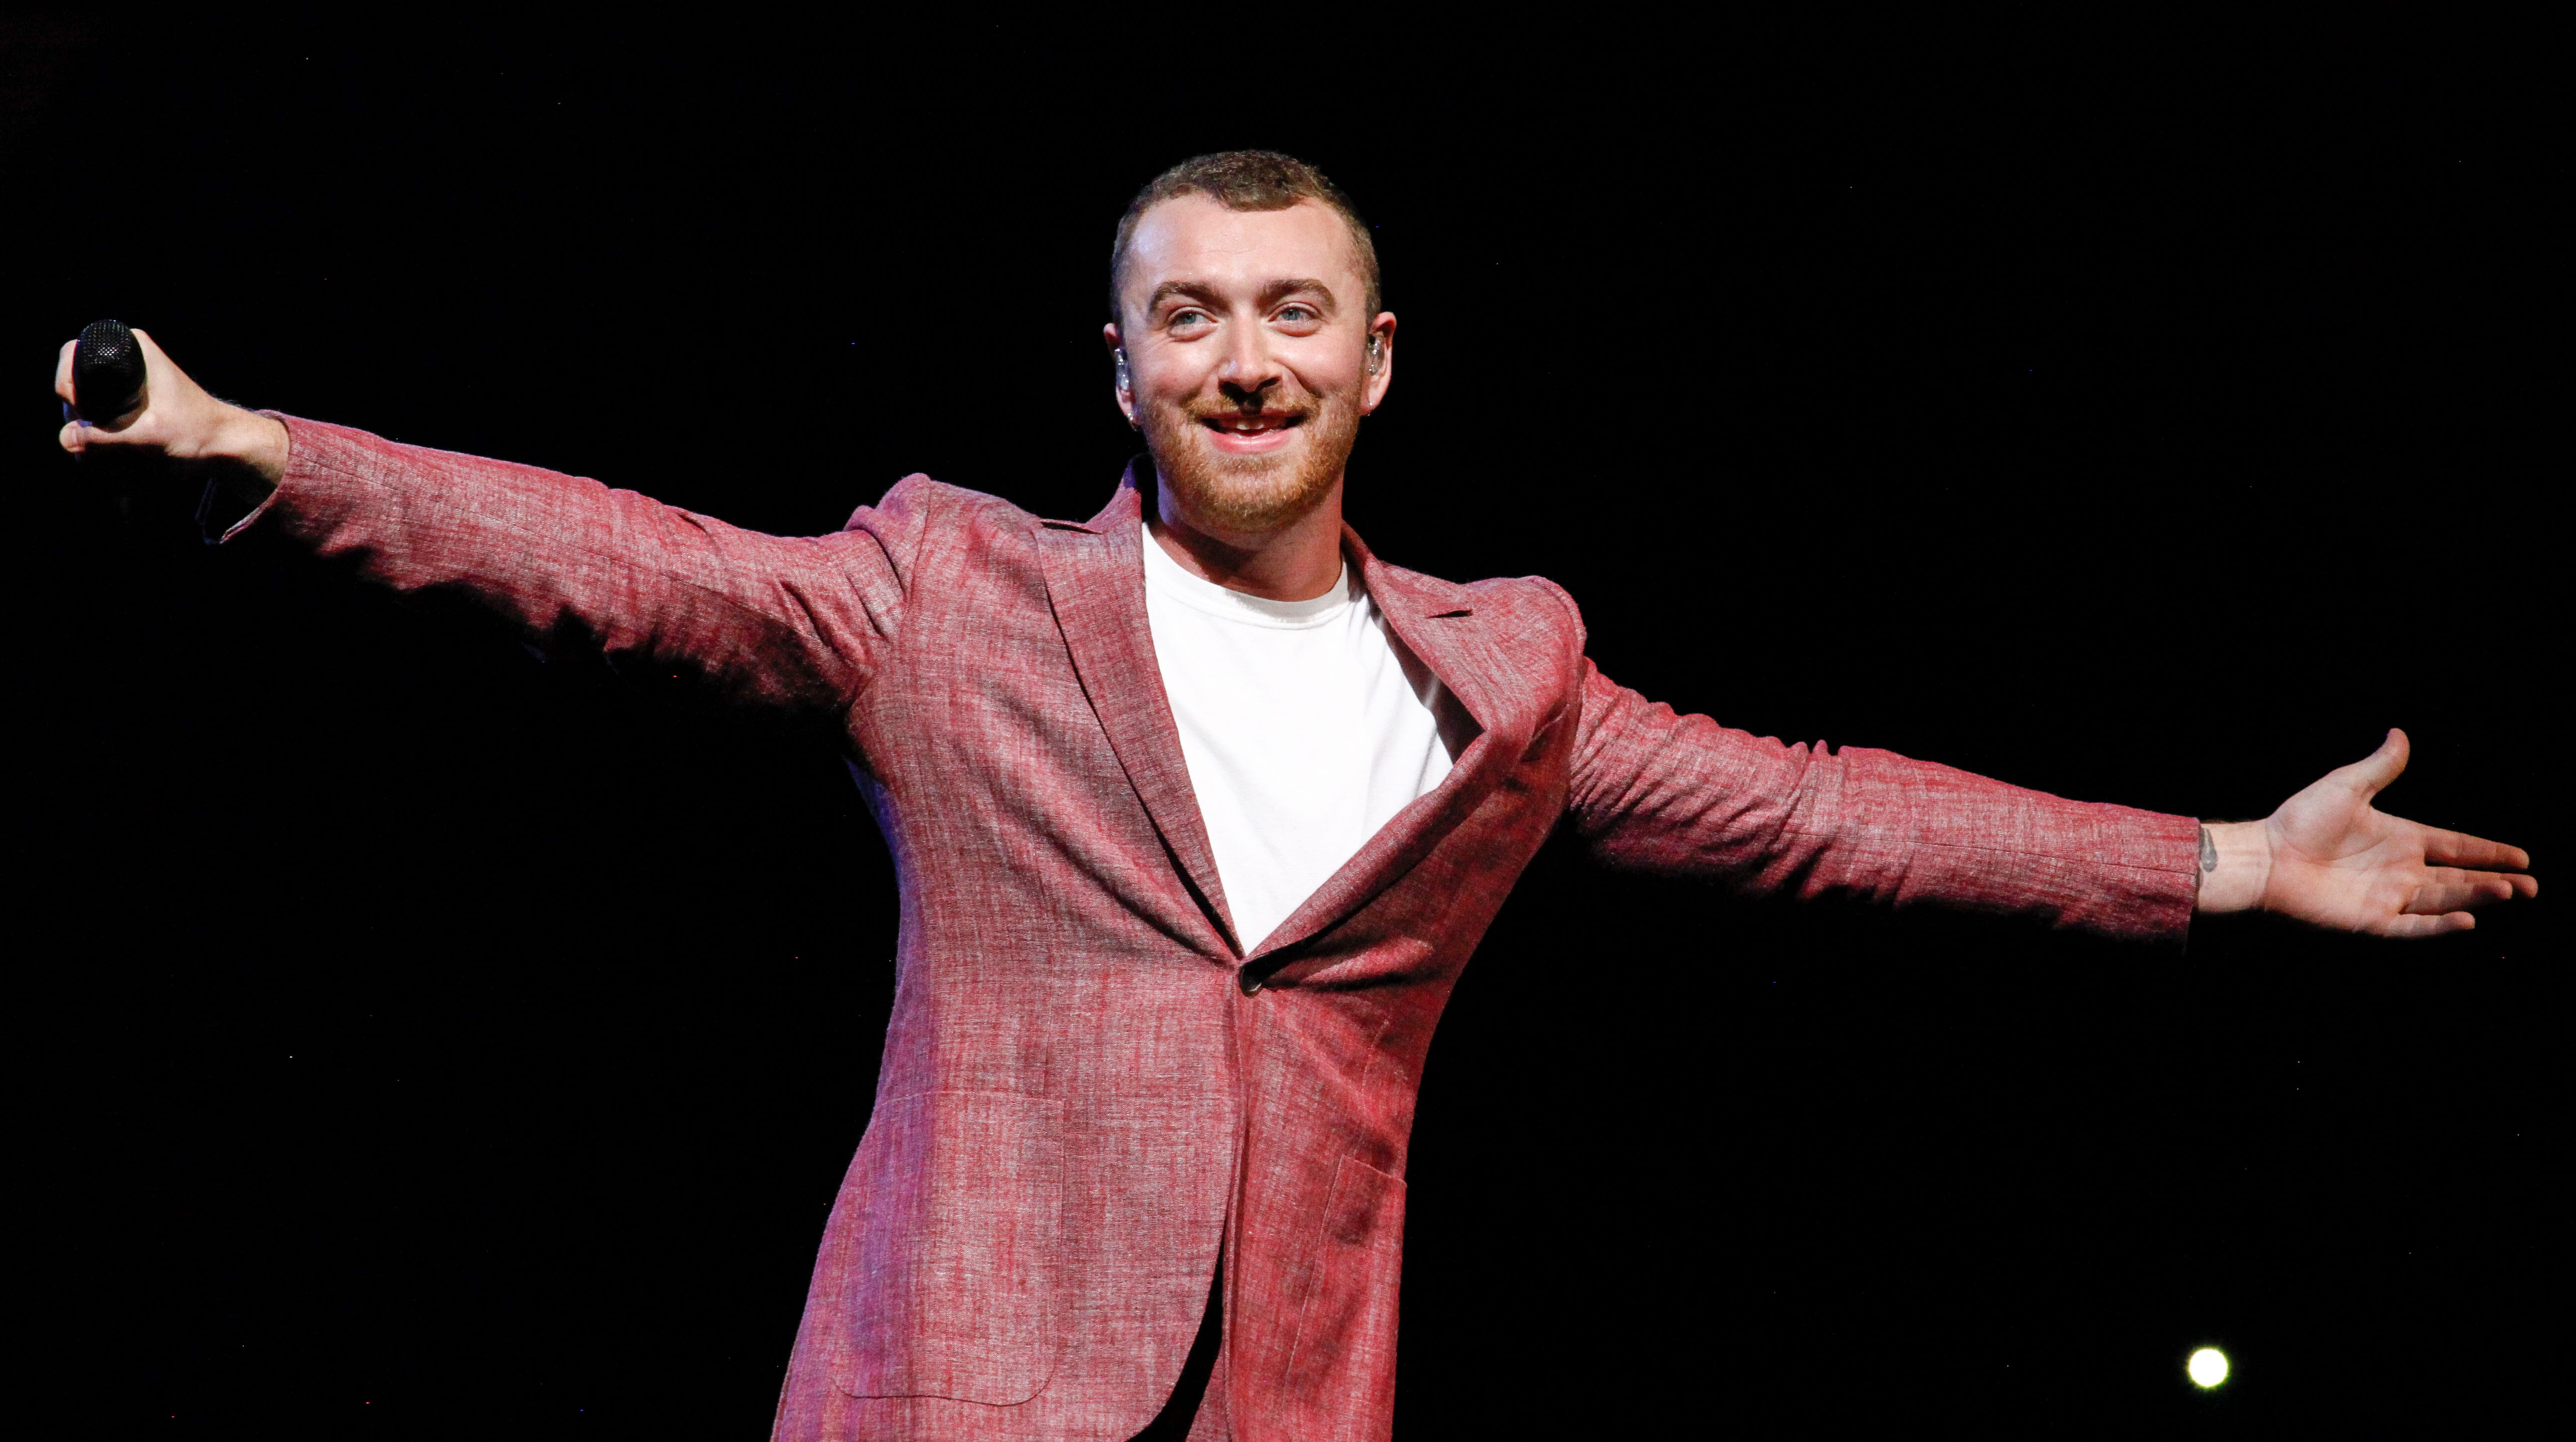 Sam Smith performs at Madison Square Garden on Friday, June 29, 2018, in New York.